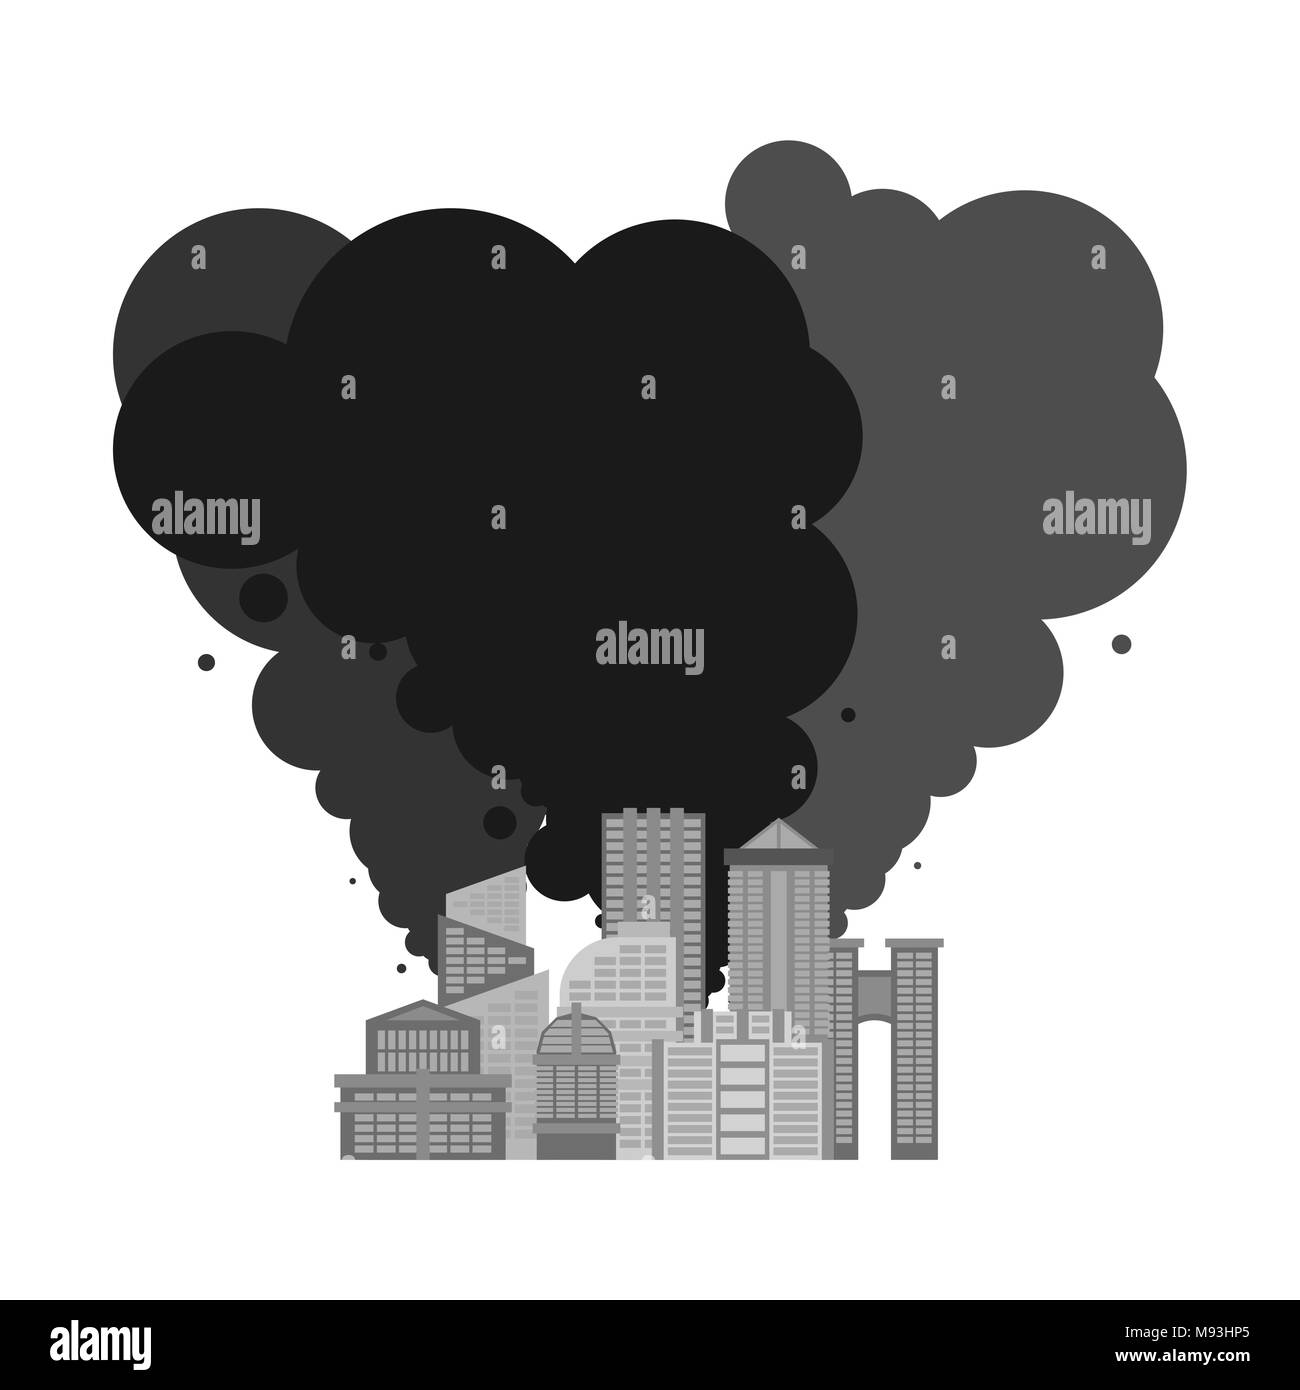 Exhaust gases from city. Environmental pollution. Factory and poisonous gas.  death of all living things. Ecological catastrophy - Stock Image